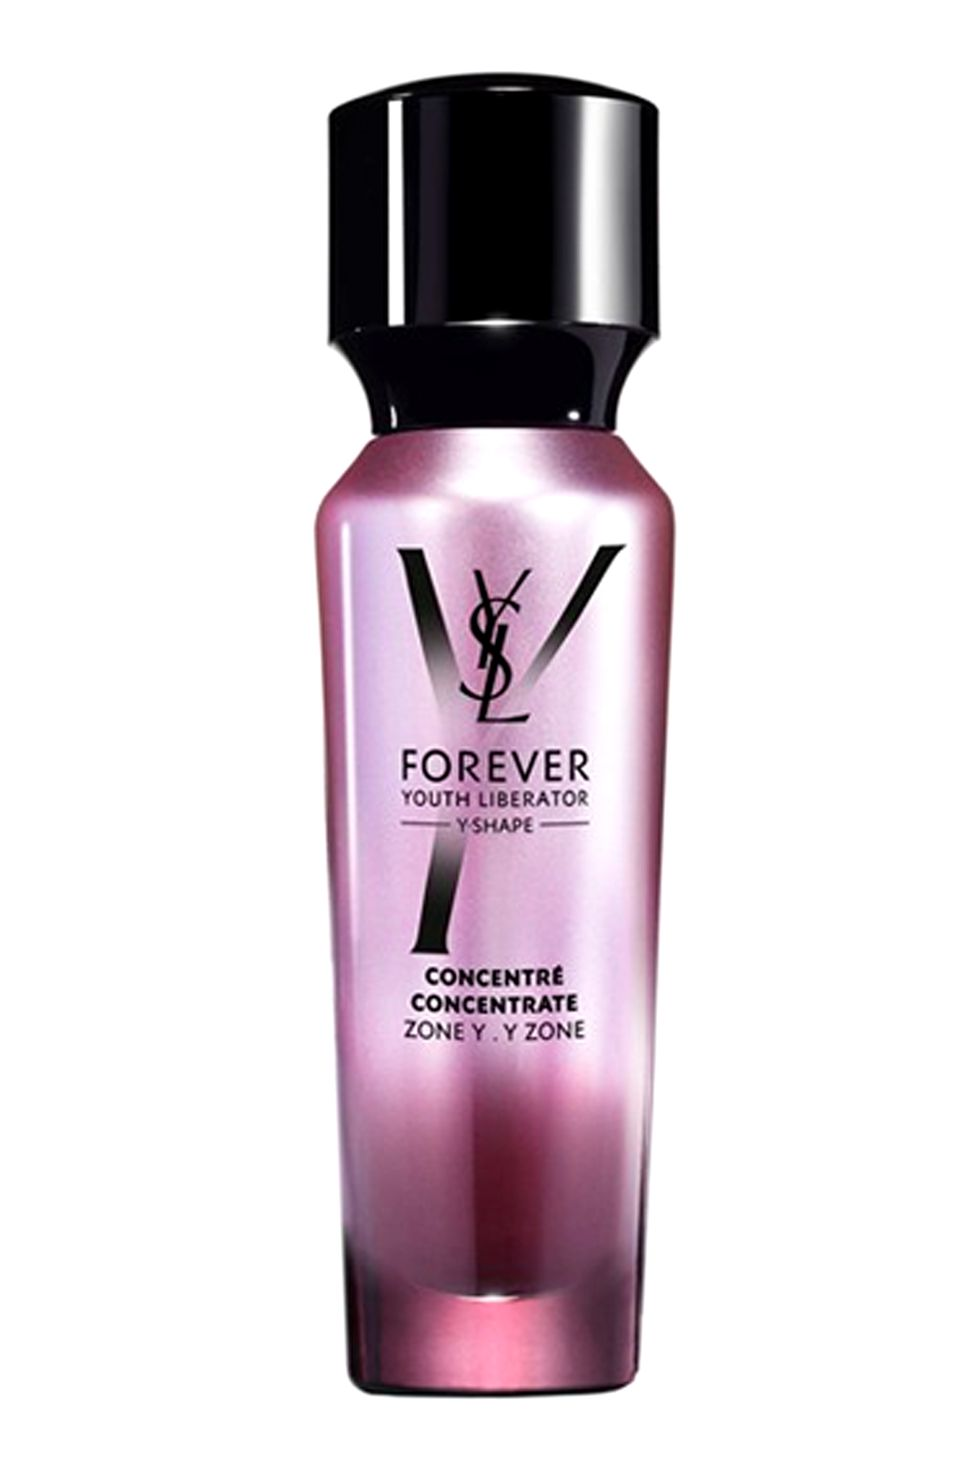 Yves Saint Laurent Forever Youth Liberator Y-Shape Concentrate